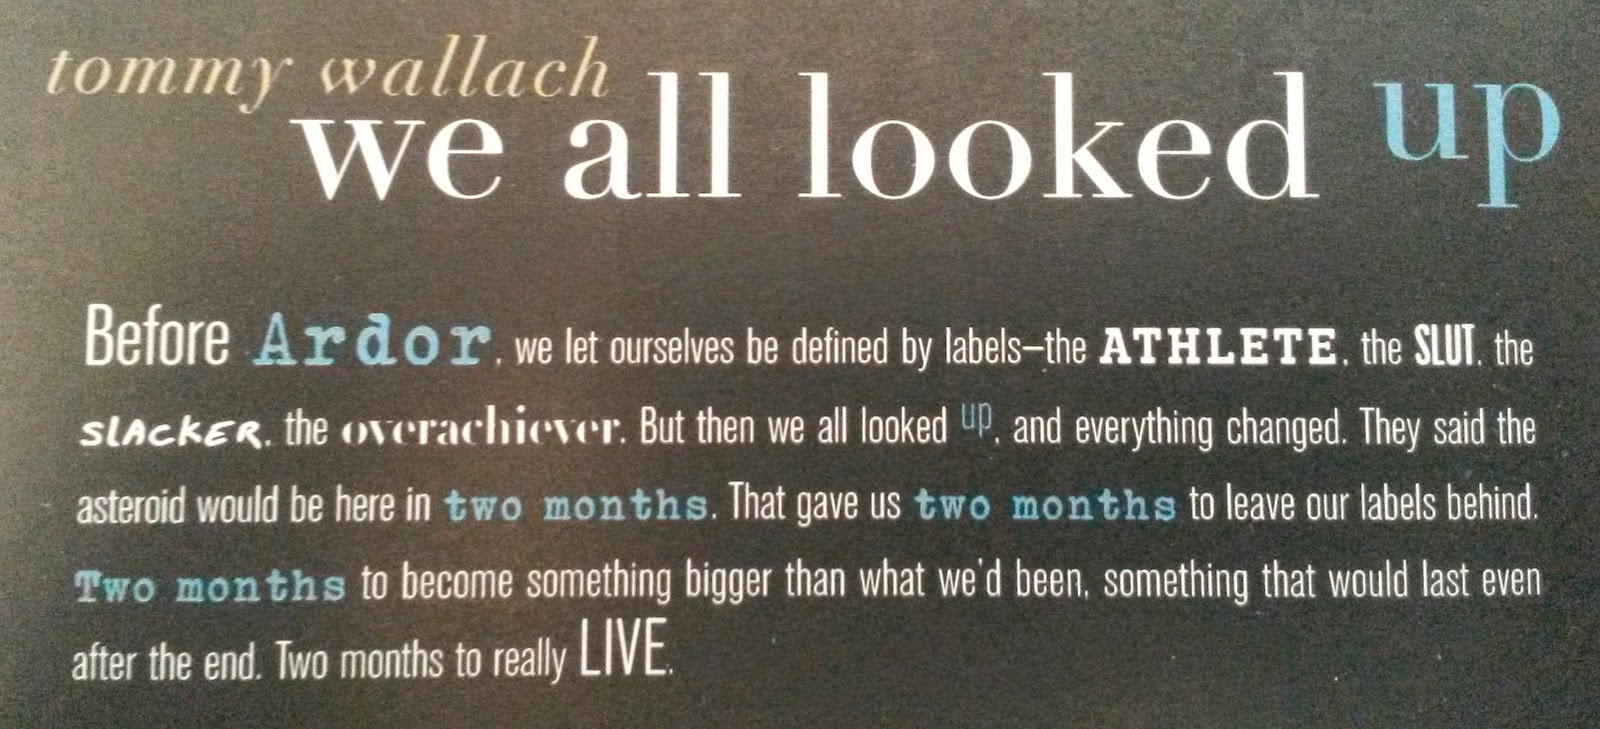 We All Looked Up - back cover of ARC